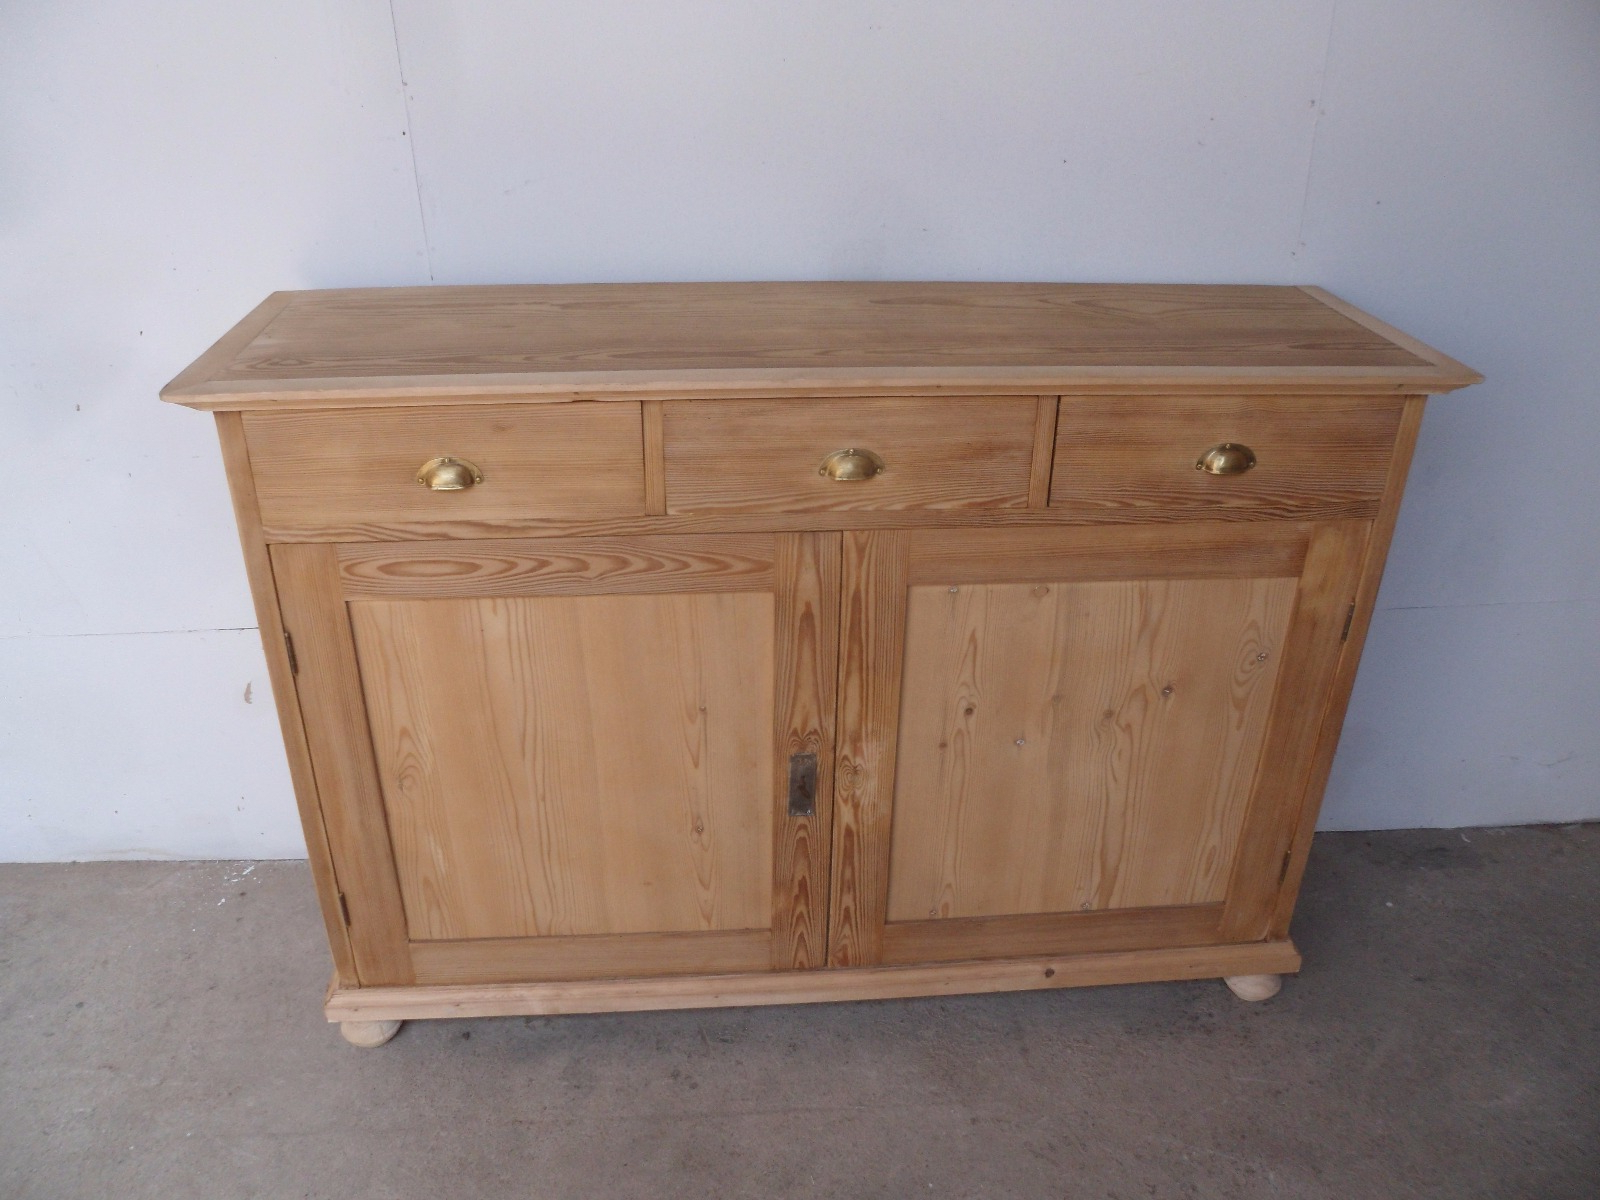 2018 Aged Pine 3 Drawer 2 Door Sideboards Intended For Large Narrow Old Pine 2 Door 3 Drawer Kitchen Dresser Base To Wax (Gallery 2 of 20)